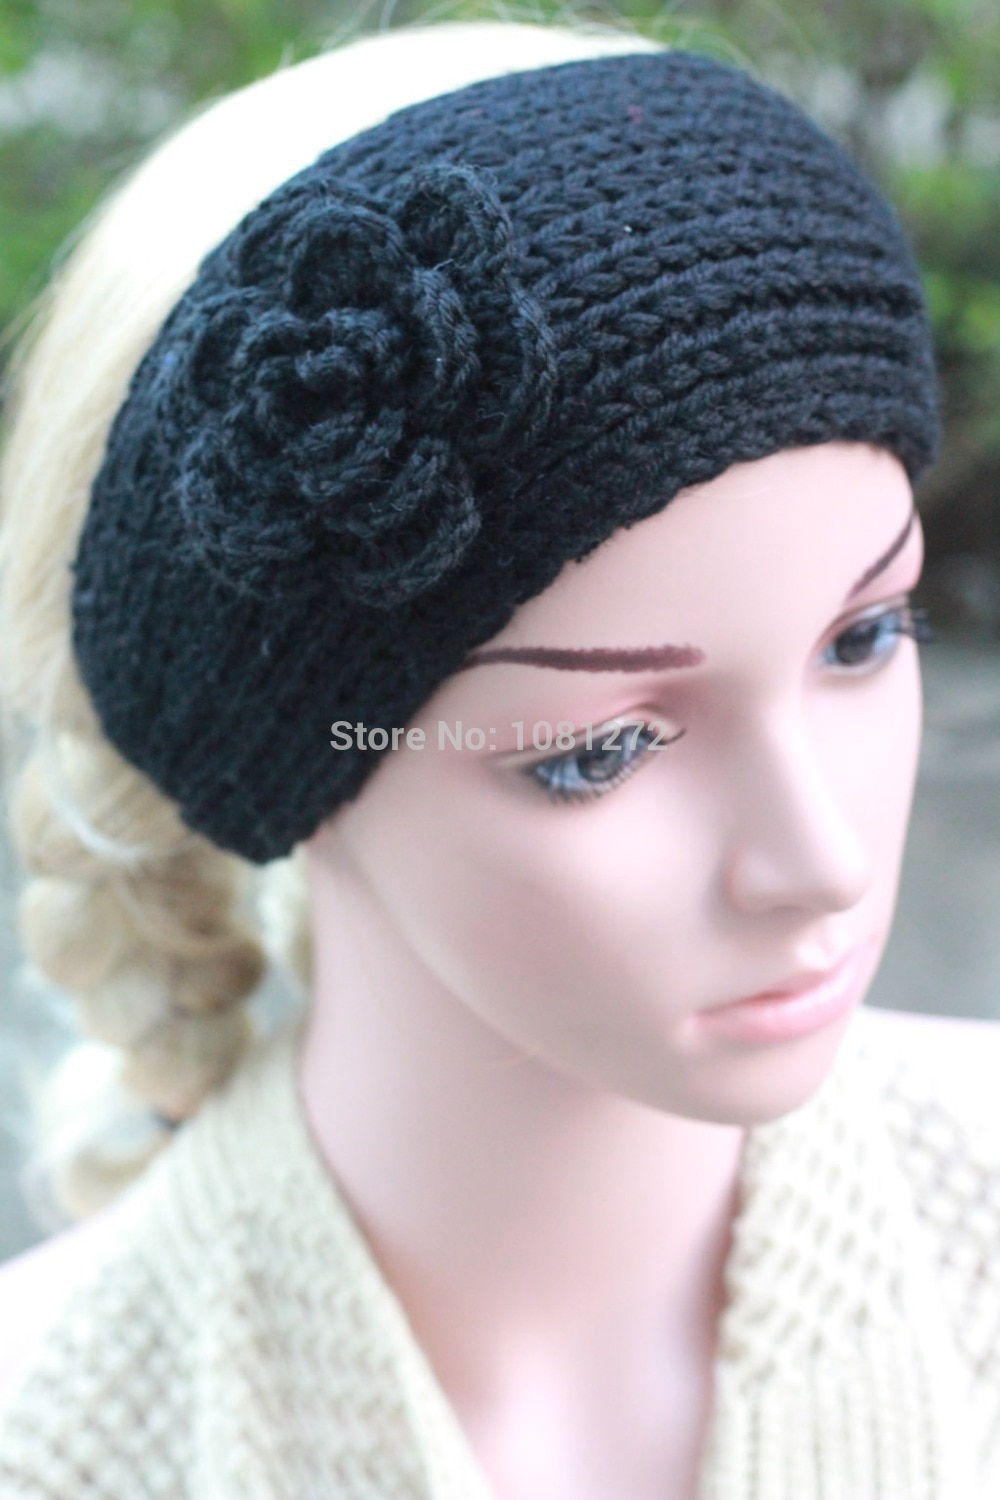 Knit Headband Pattern With Flower Us 529 Black Knit Headbandsmall Flower Headbandearwarmerhair Accessorieshead Wrapheadband Patternfall And Winter Hair Accessory In Womens